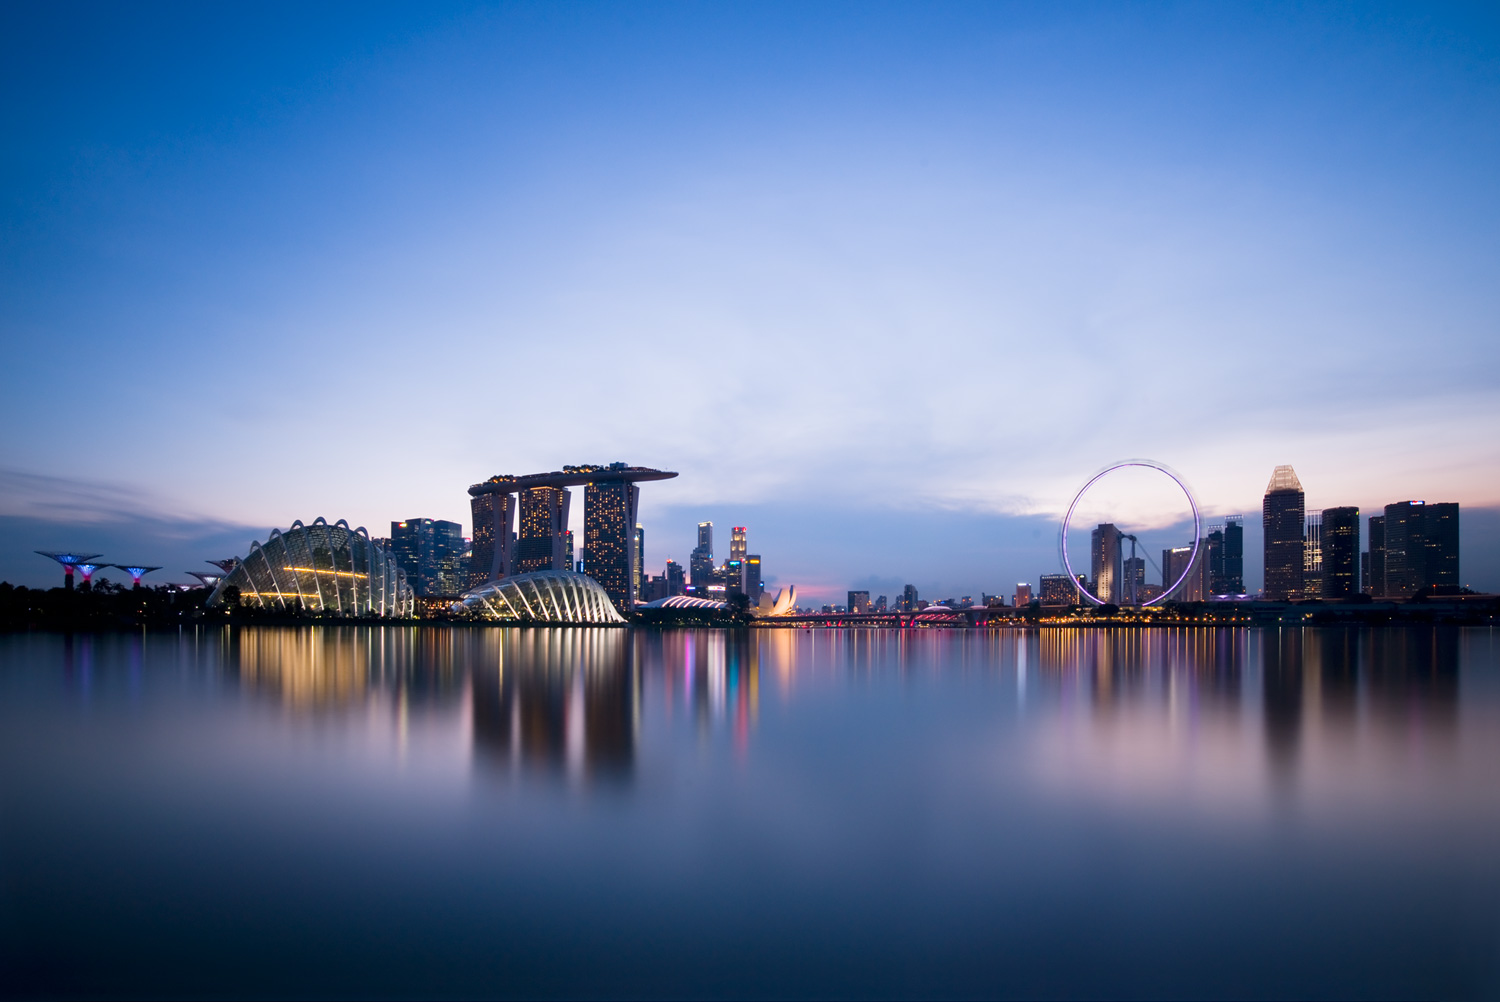 waterfront-cityscapes-at-blue-hour